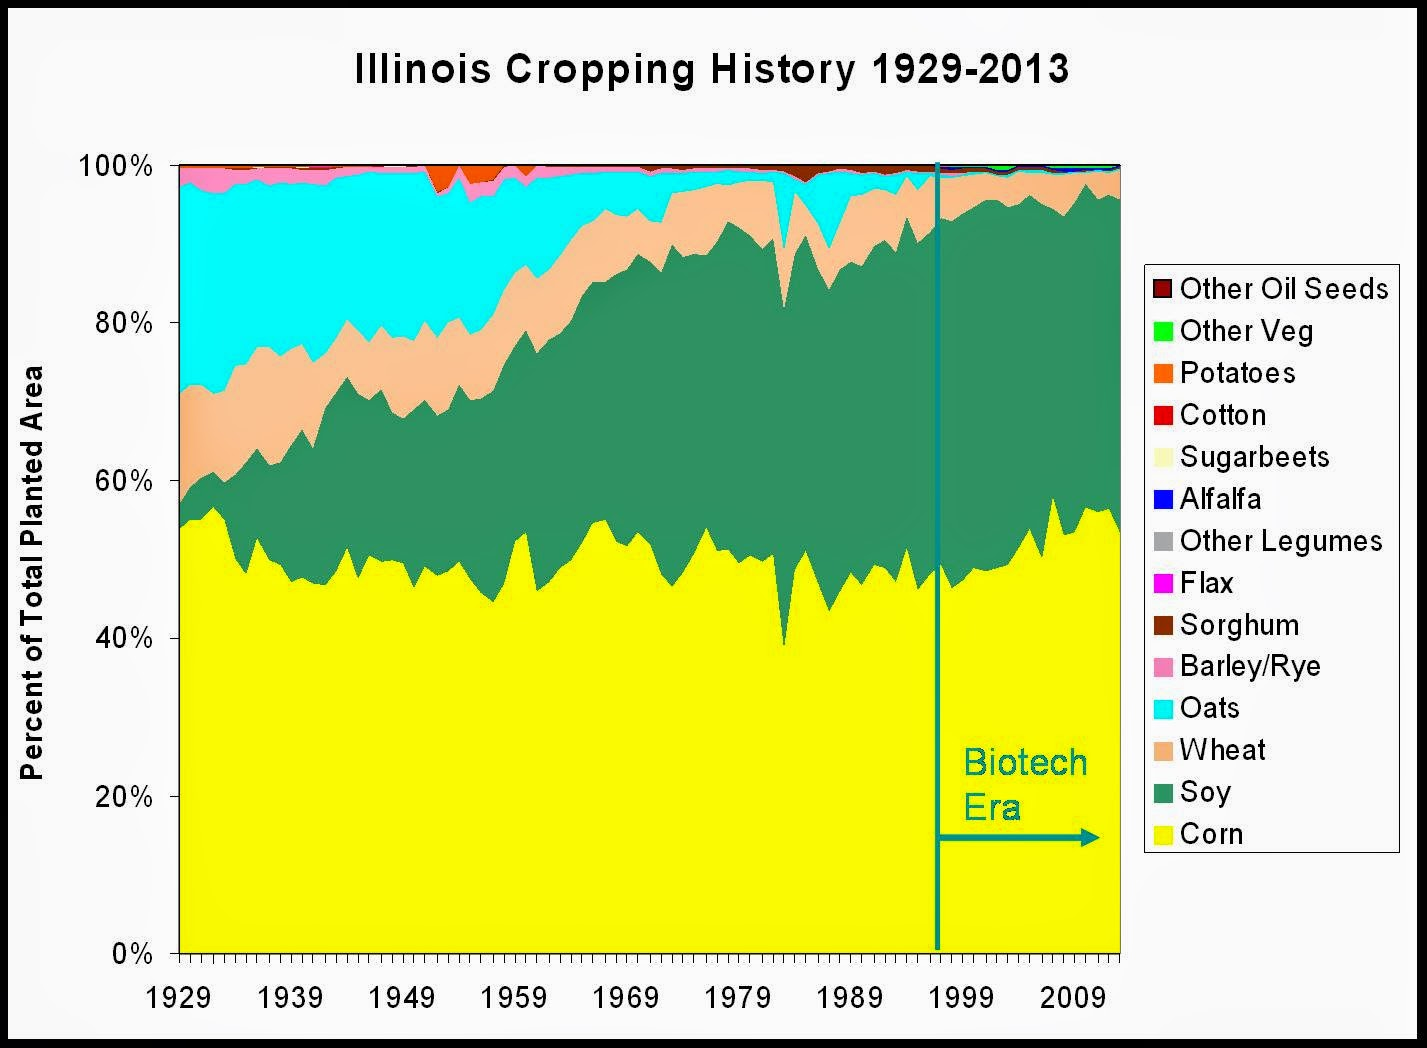 Illinois crop history